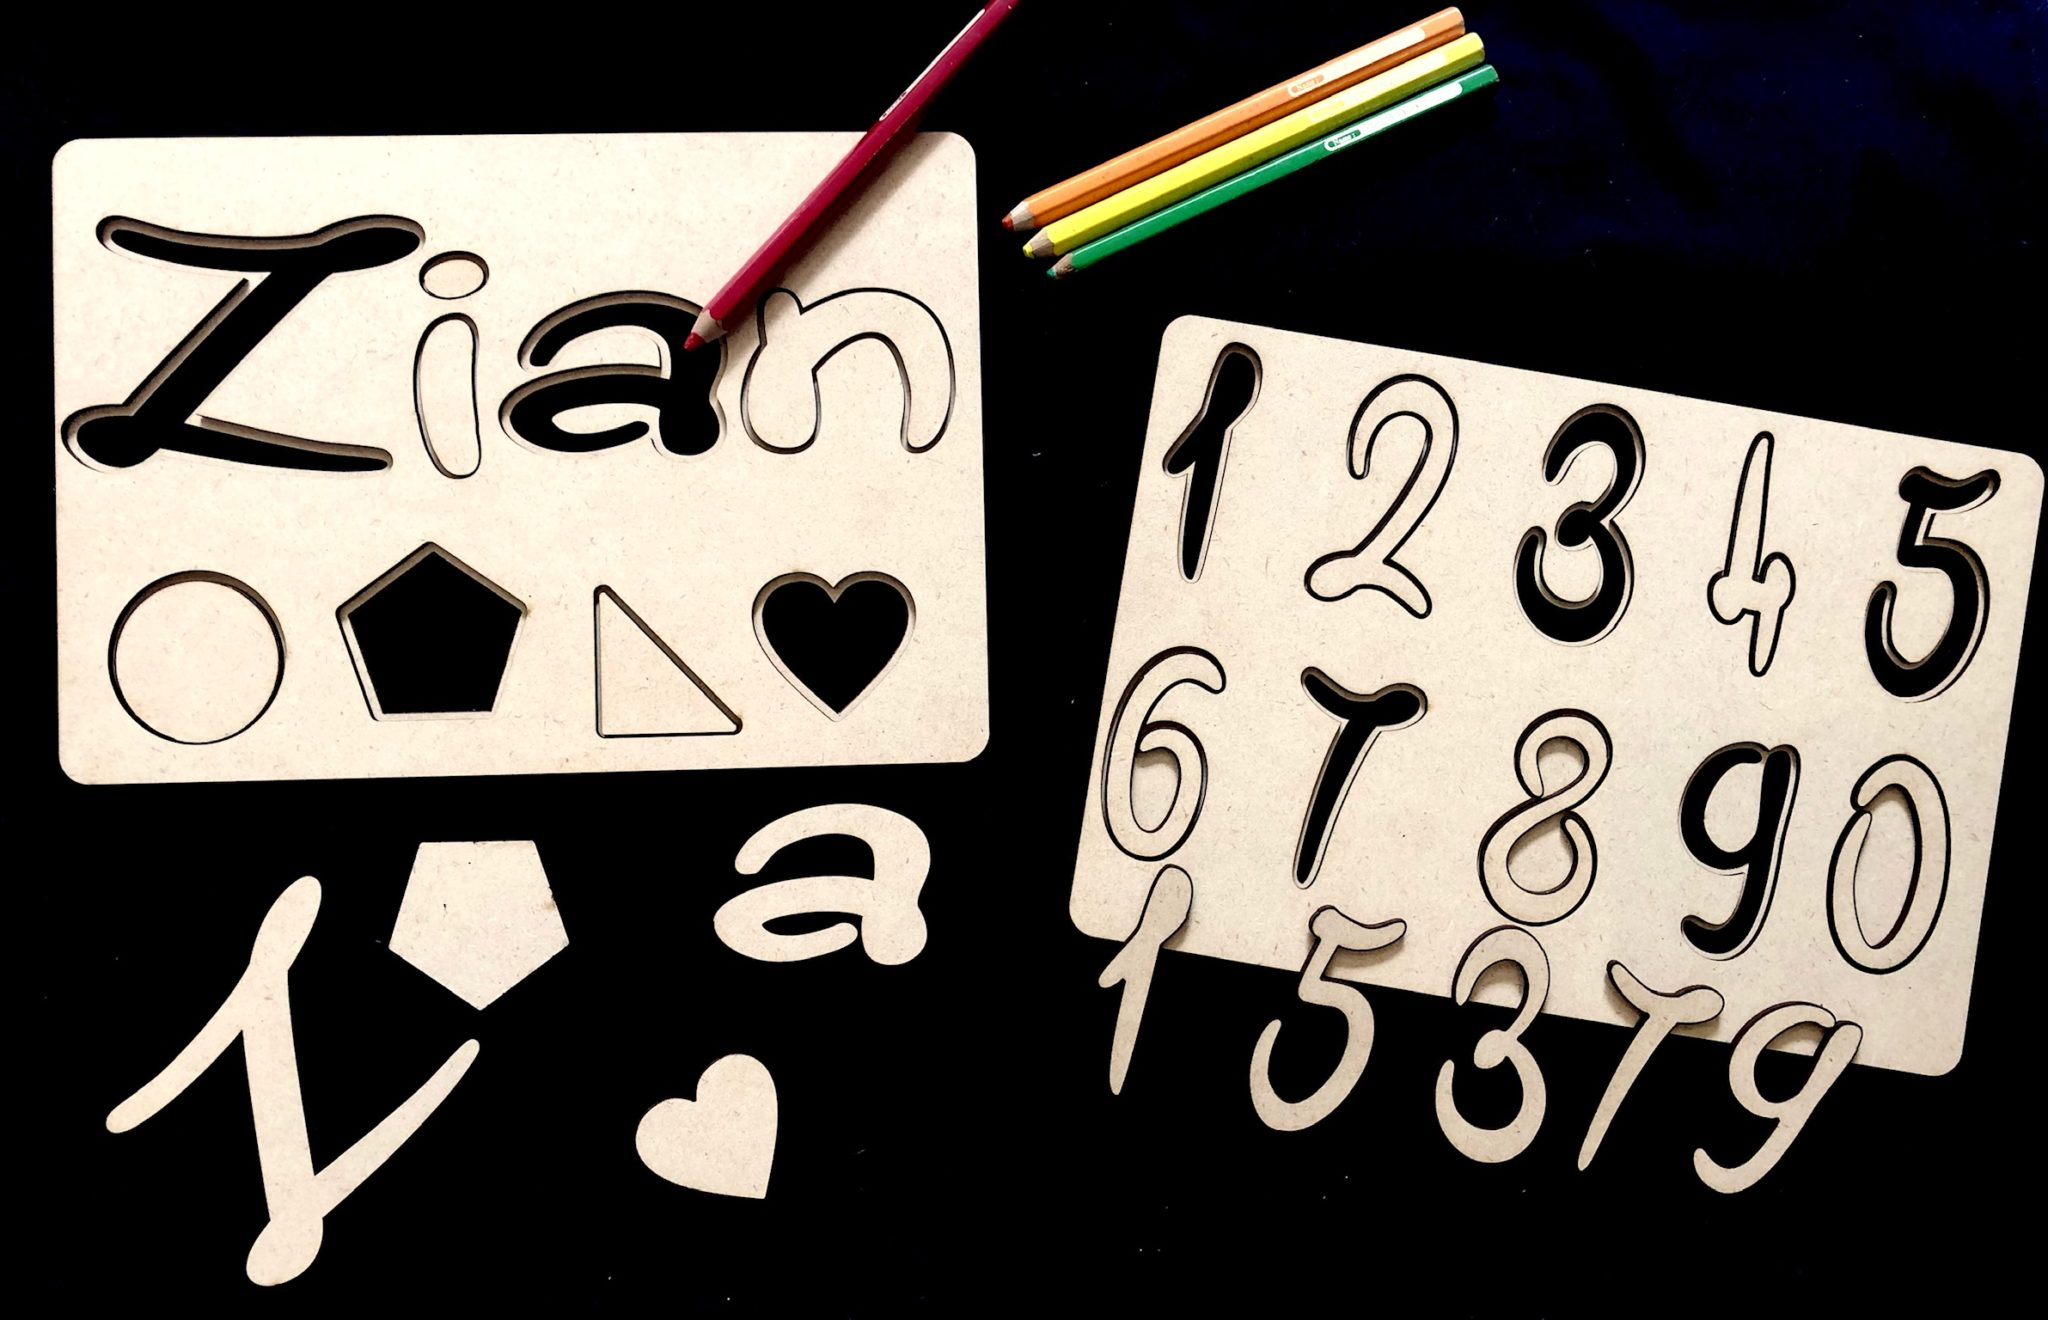 Custom name and number puzzle (unpainted) via @chooicenz